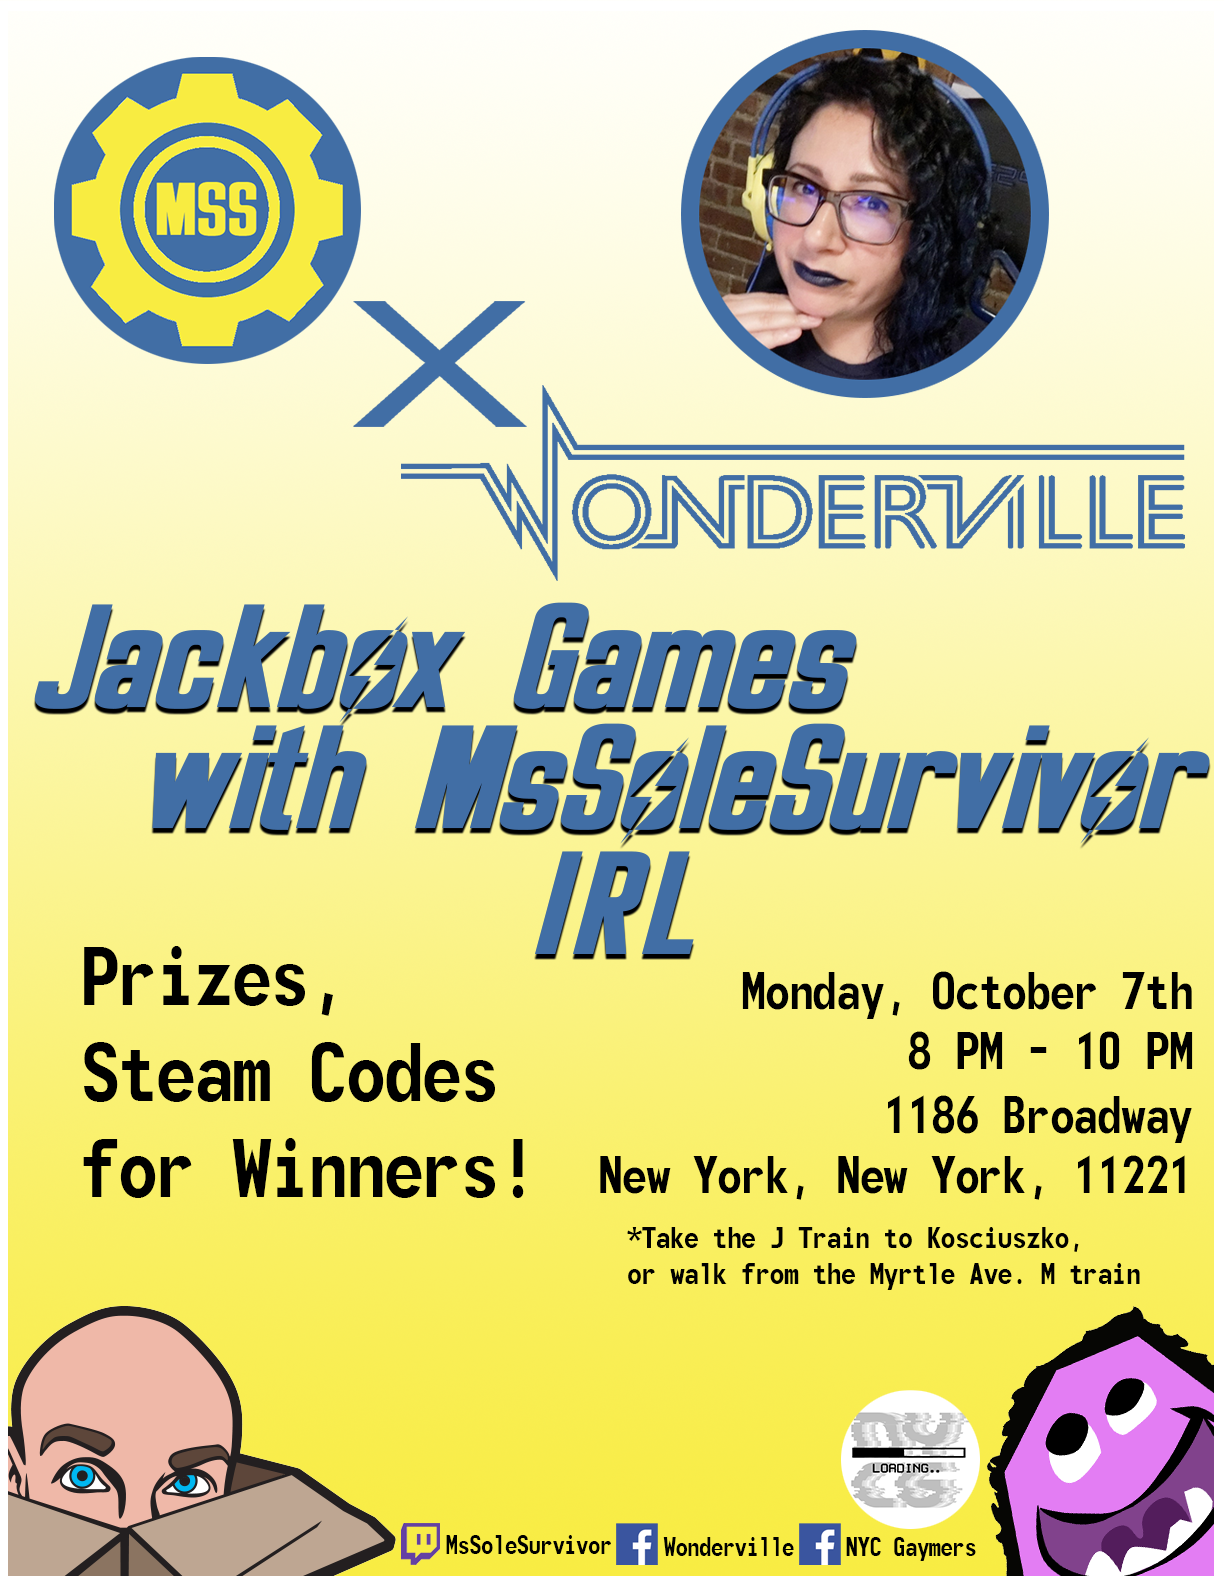 Tickets:  https://withfriends.co/event/2745962/jackbox_games_with_mssolesurvivor_irl